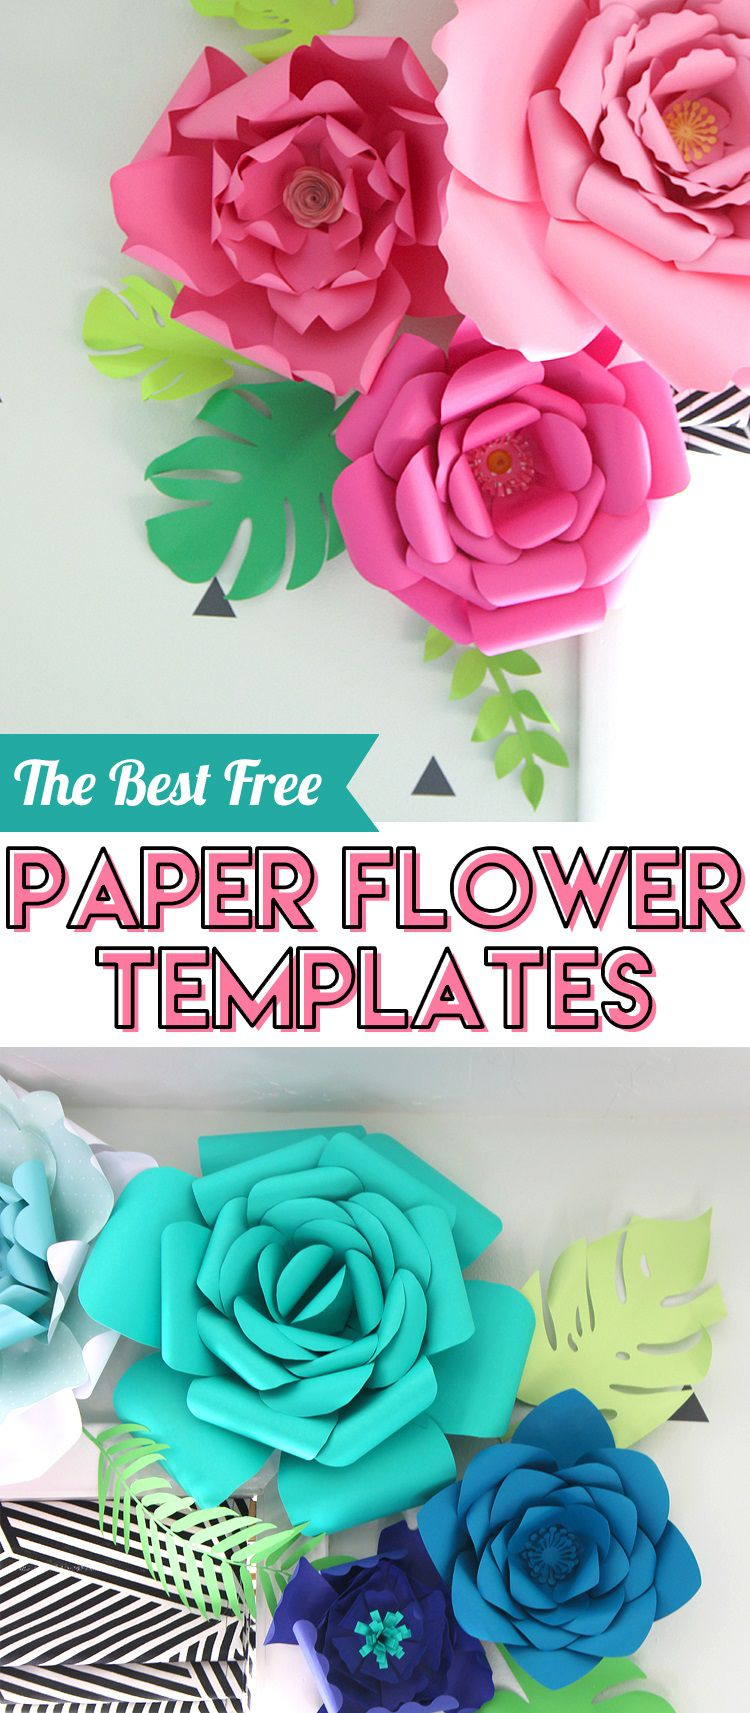 007 Impressive Giant Paper Flower Template Free Download Picture Full